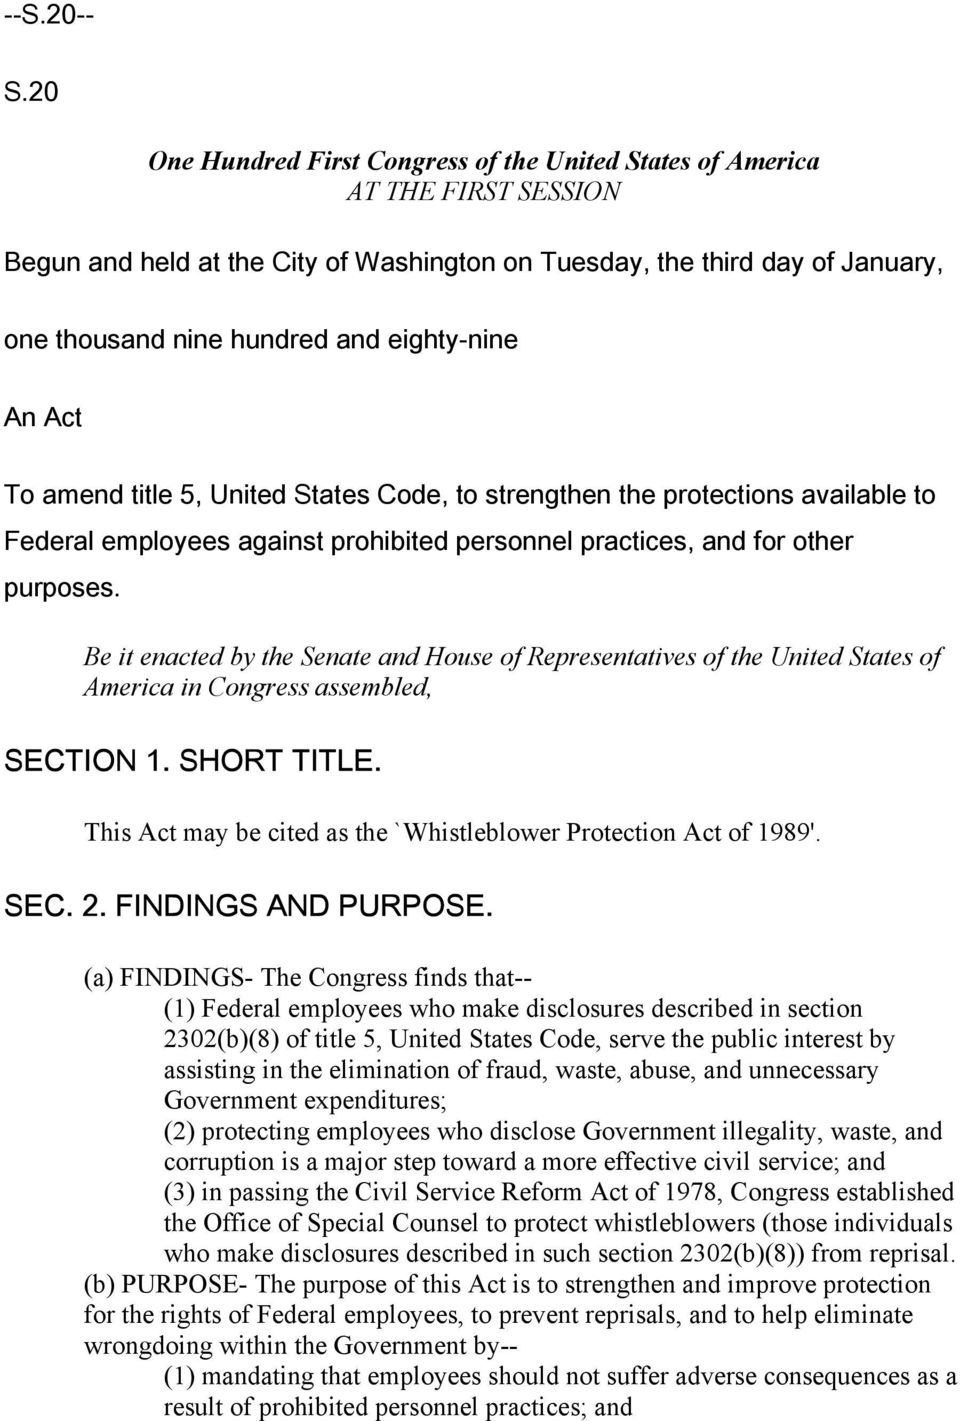 eighty-nine An Act To amend title 5, United States Code, to strengthen the protections available to Federal employees against prohibited personnel practices, and for other purposes.